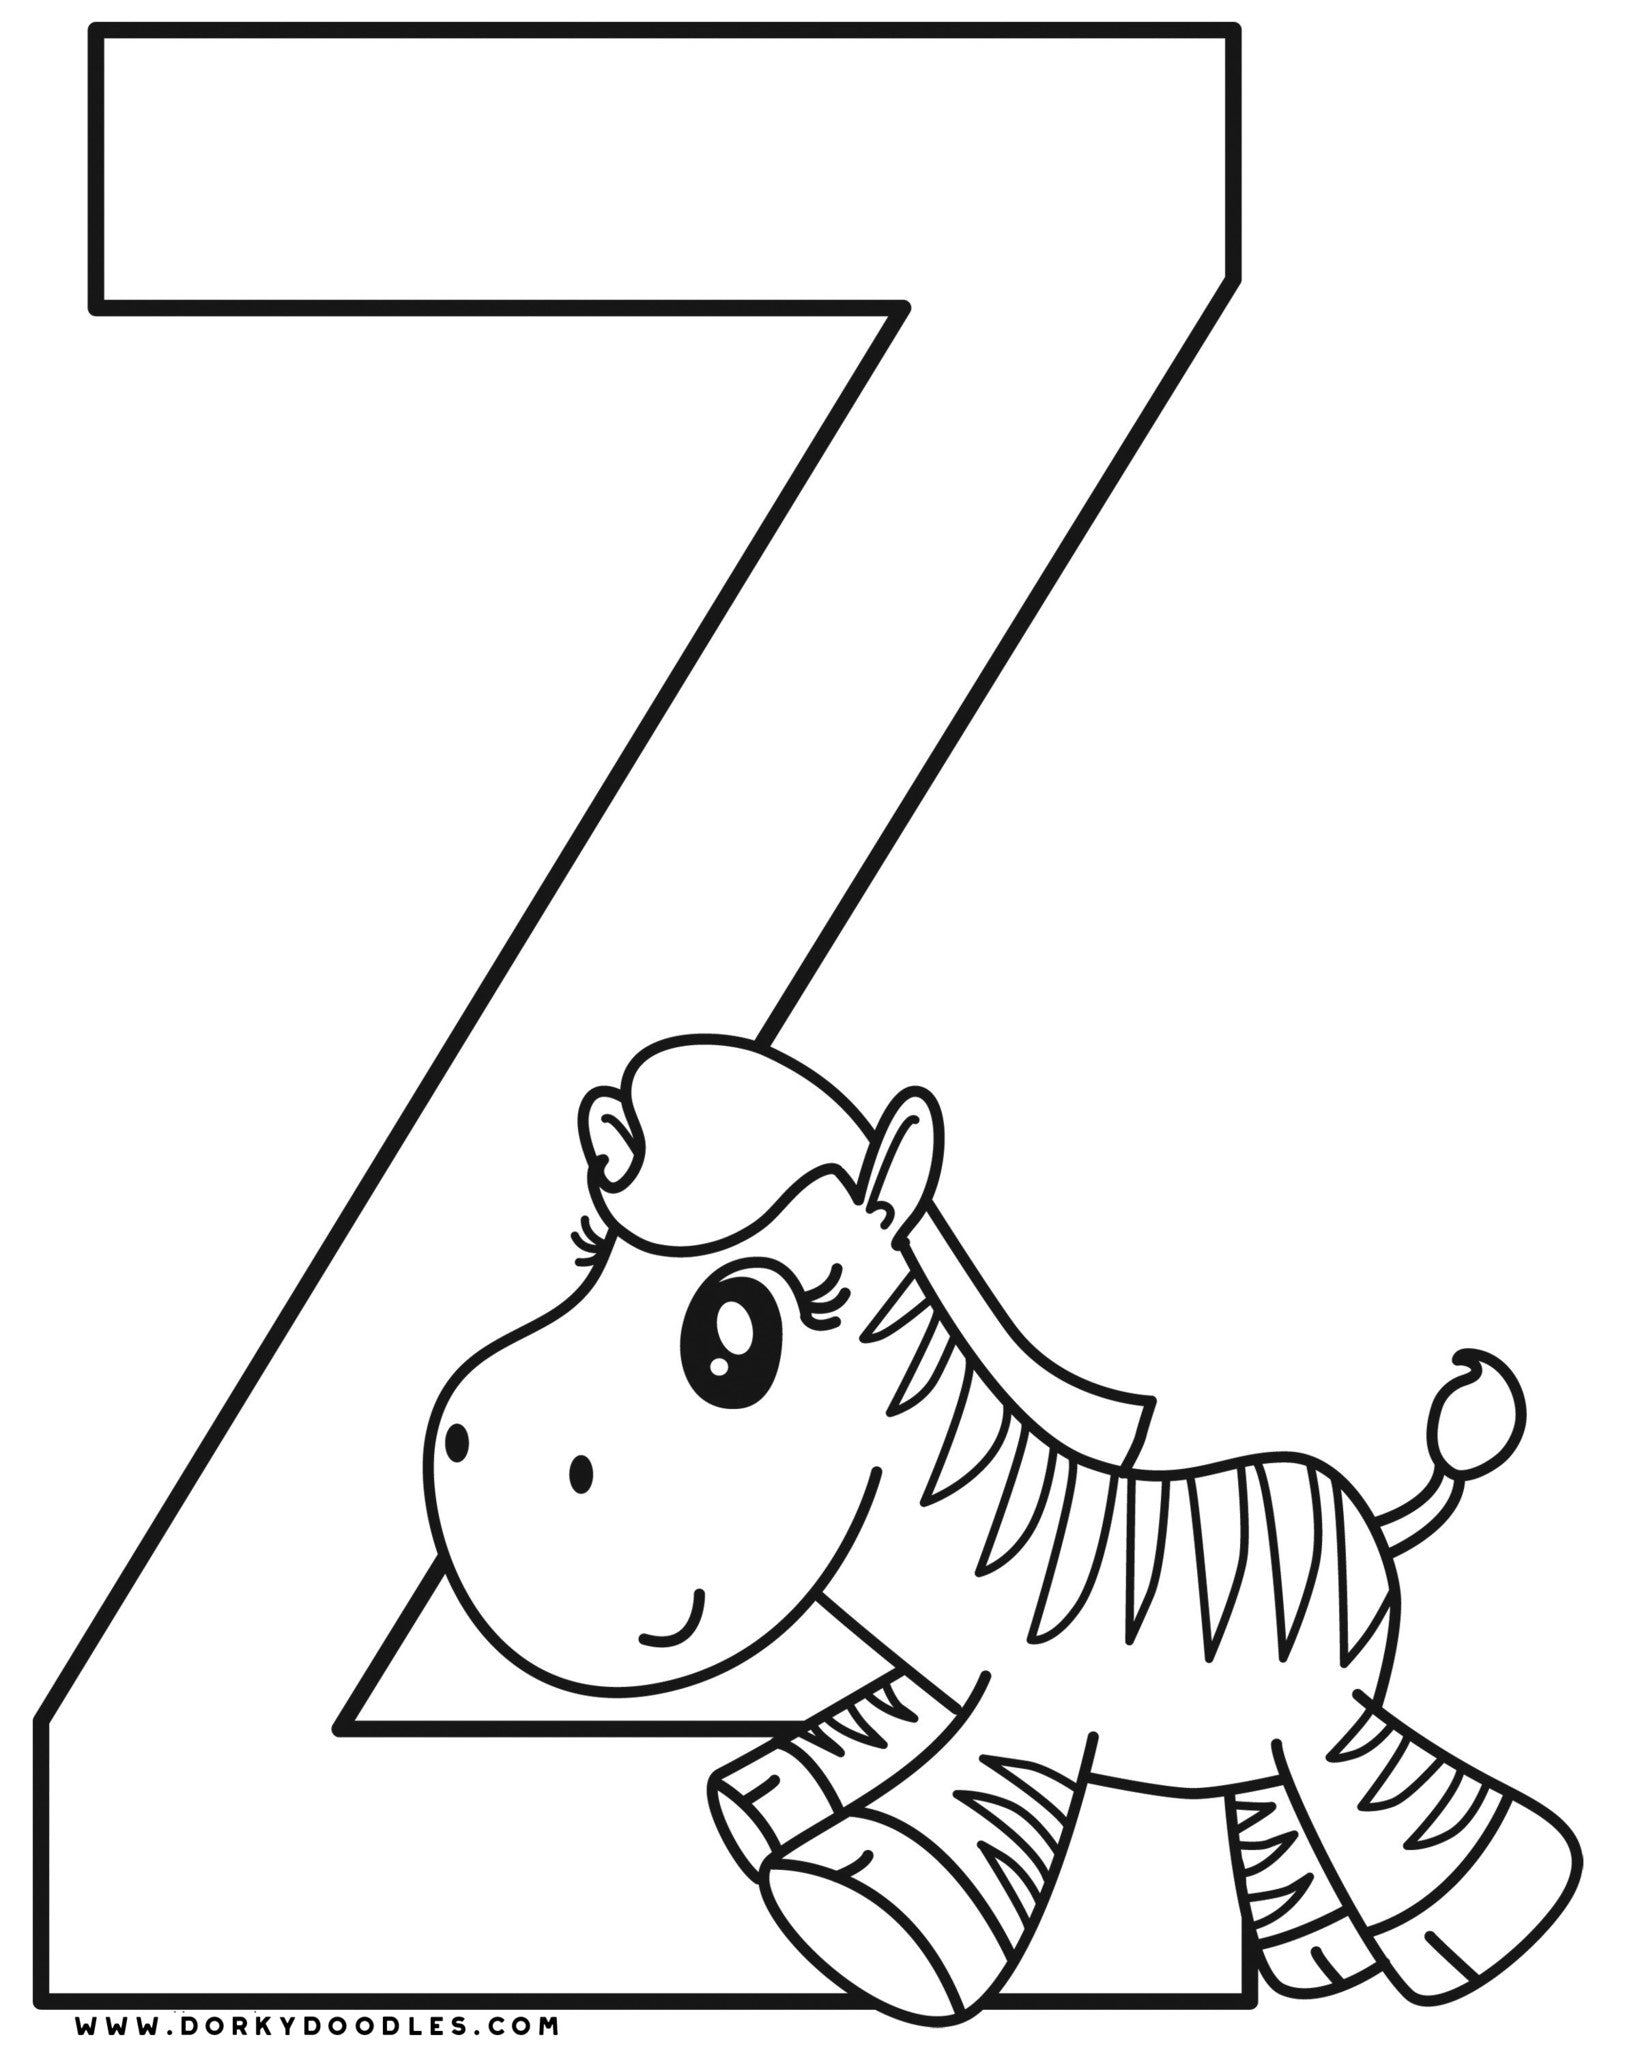 letter z coloring page and writing practice worksheets dorky doodles. Black Bedroom Furniture Sets. Home Design Ideas